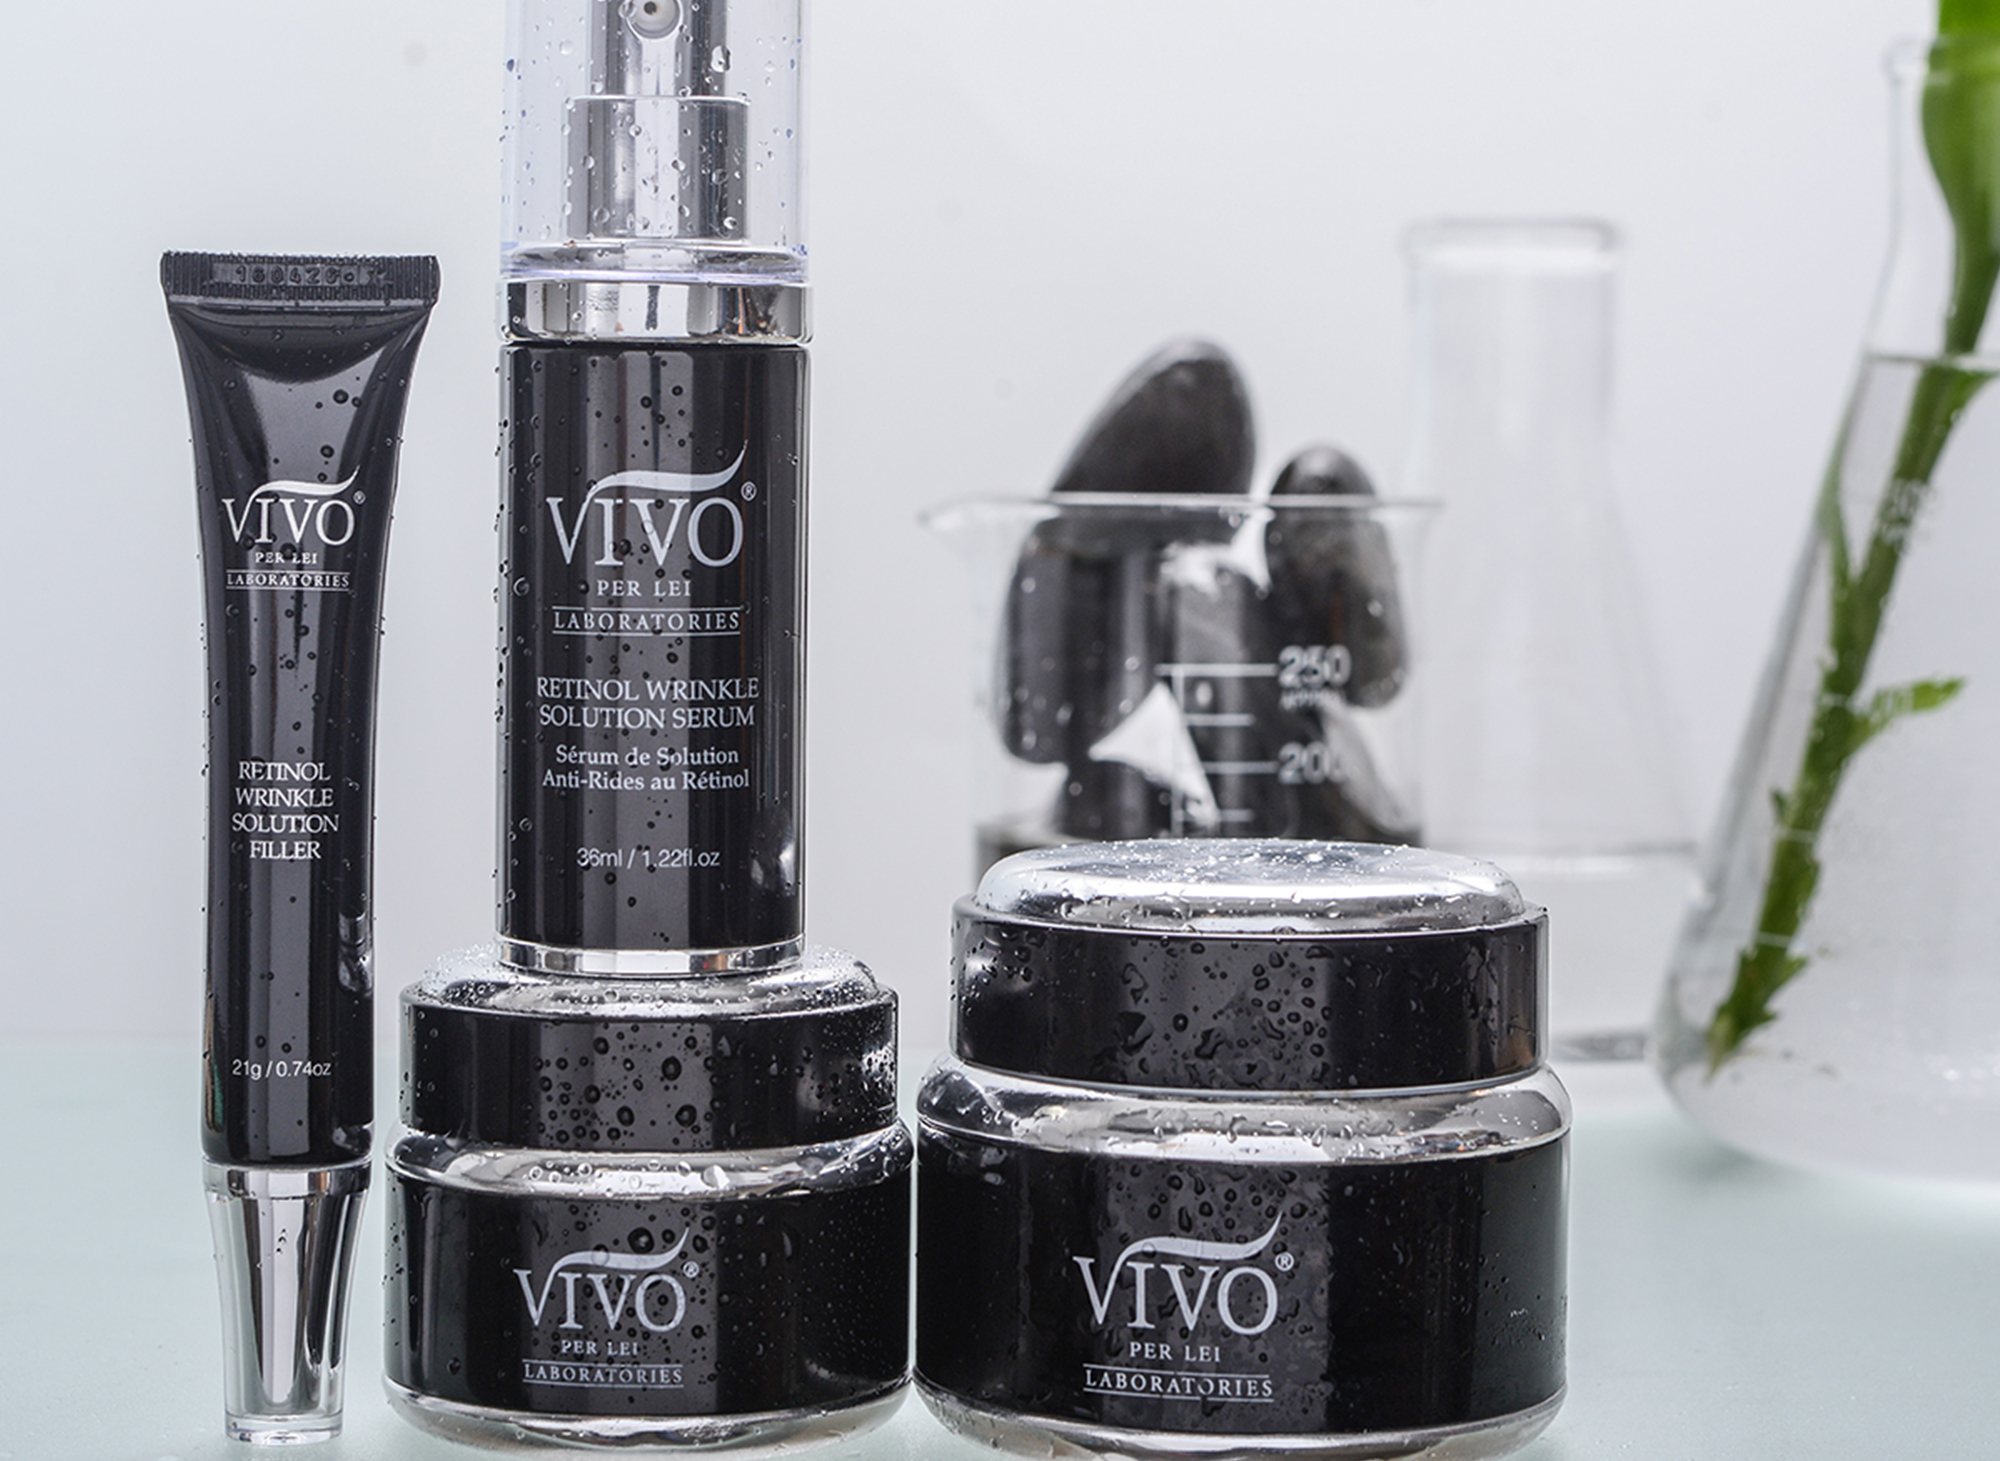 Vivo Per Lei Laboratories Collection